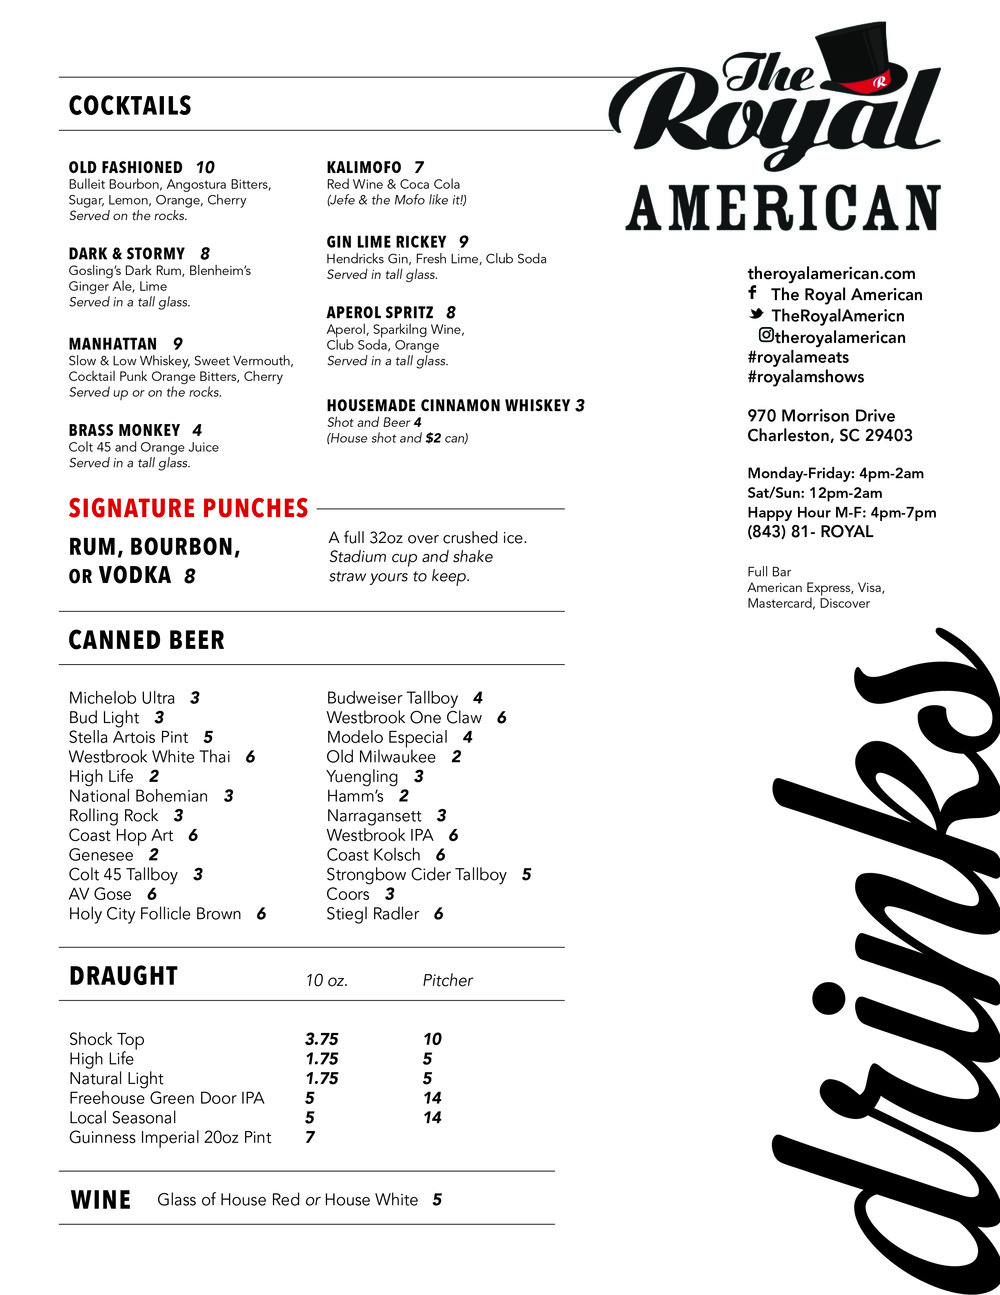 Royal American Menu_FINAL.jpg